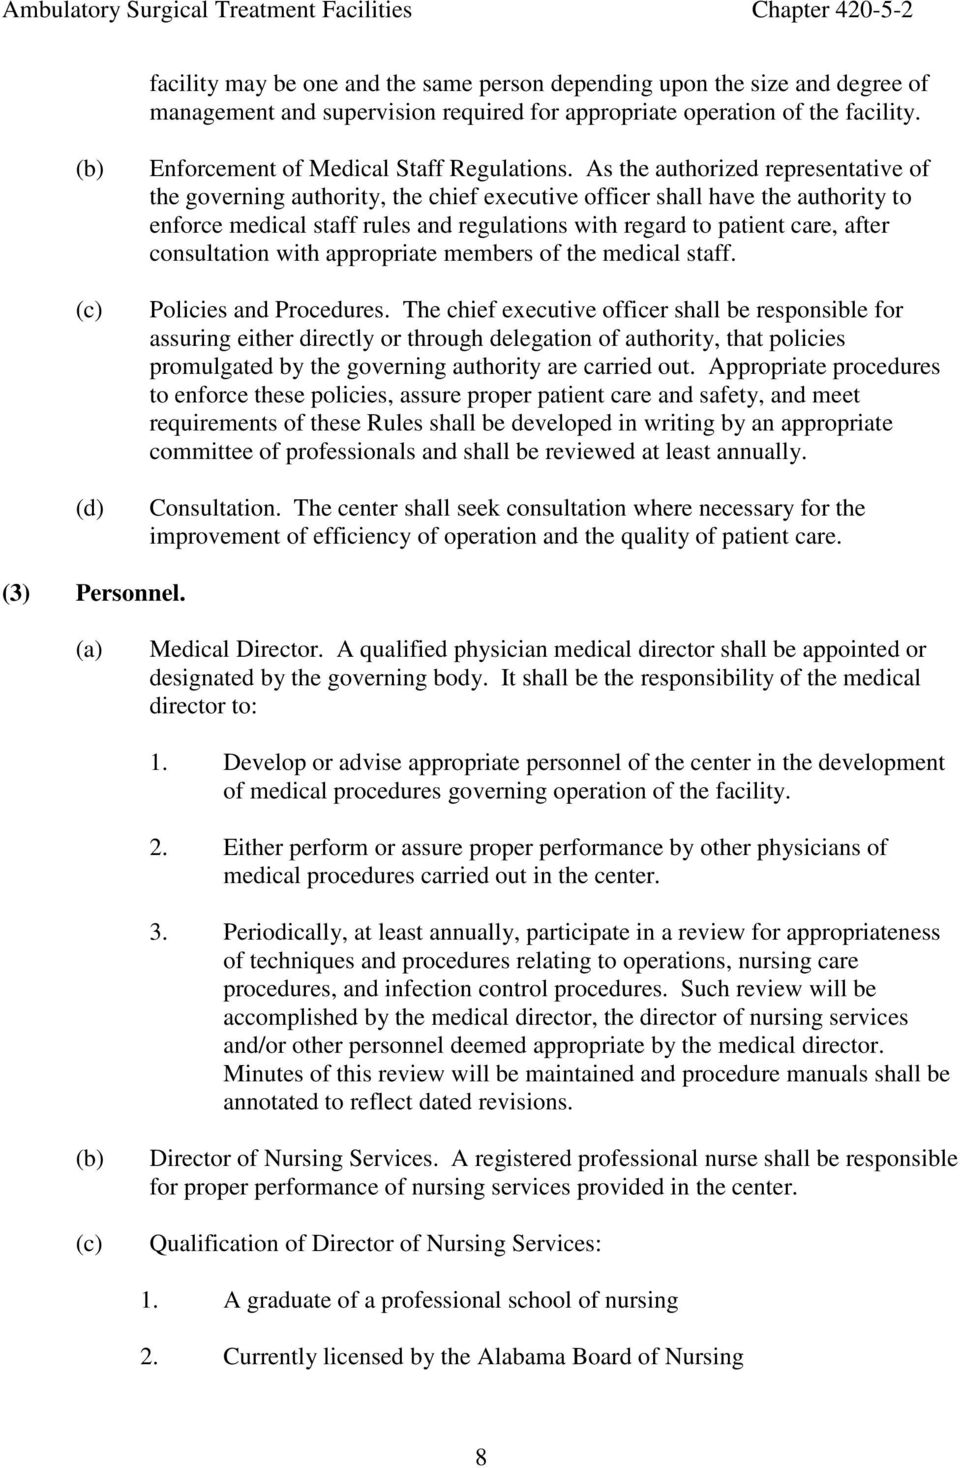 As the authorized representative of the governing authority, the chief executive officer shall have the authority to enforce medical staff rules and regulations with regard to patient care, after